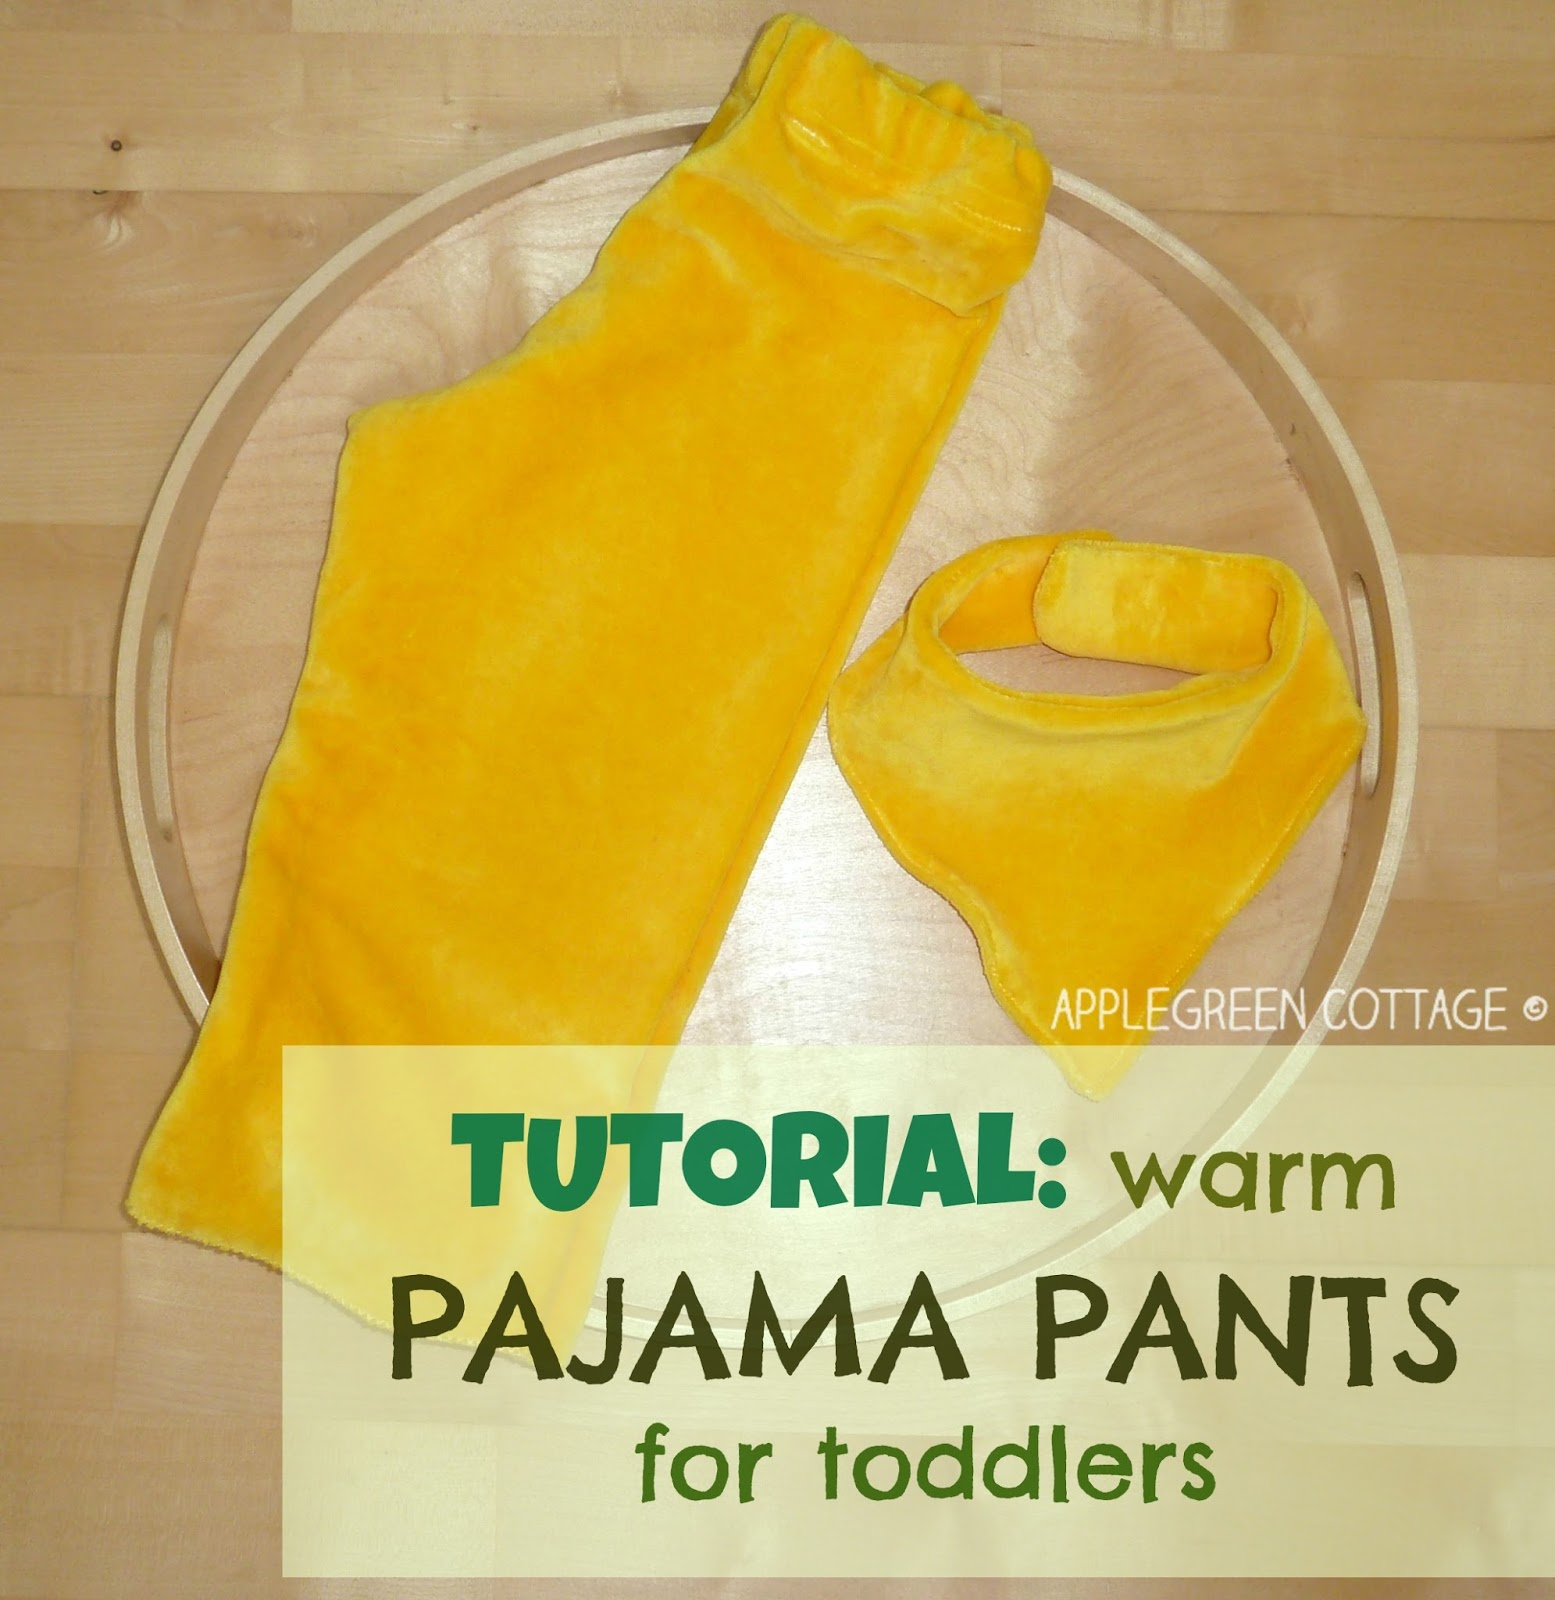 http://applegreencottage.blogspot.com/2015/02/how-to-make-pajama-pants-for-kids-tutorial.html